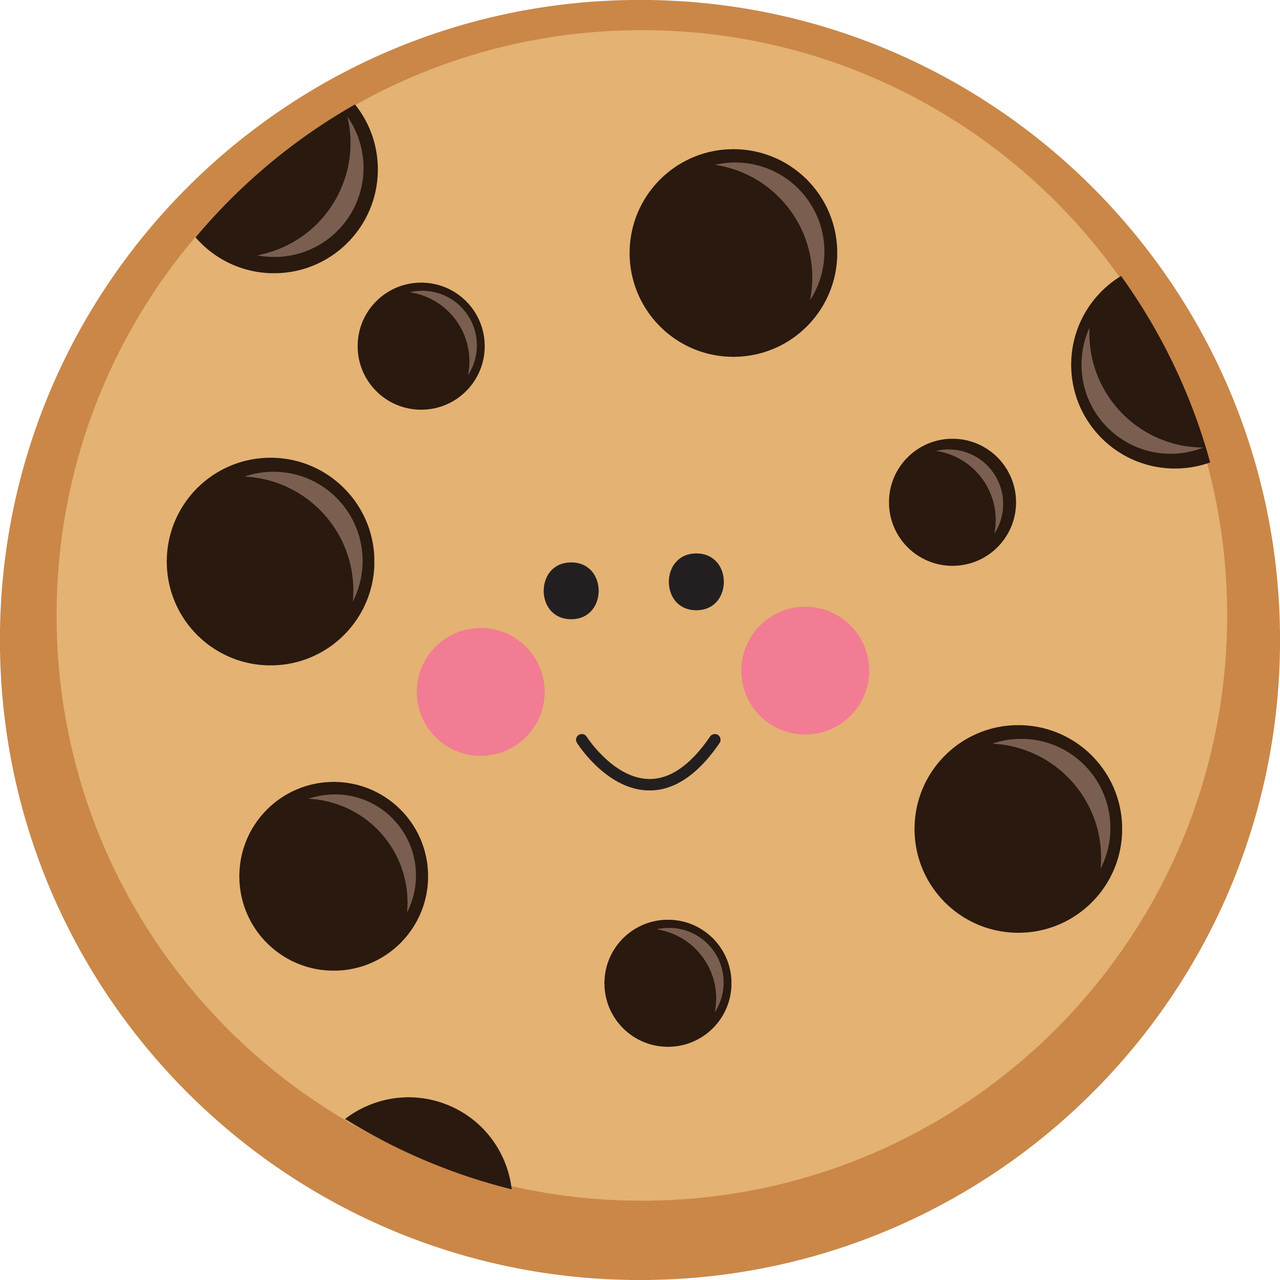 Free cookie clipart png download Free Cookies Cliparts, Download Free Clip Art, Free Clip Art on ... png download